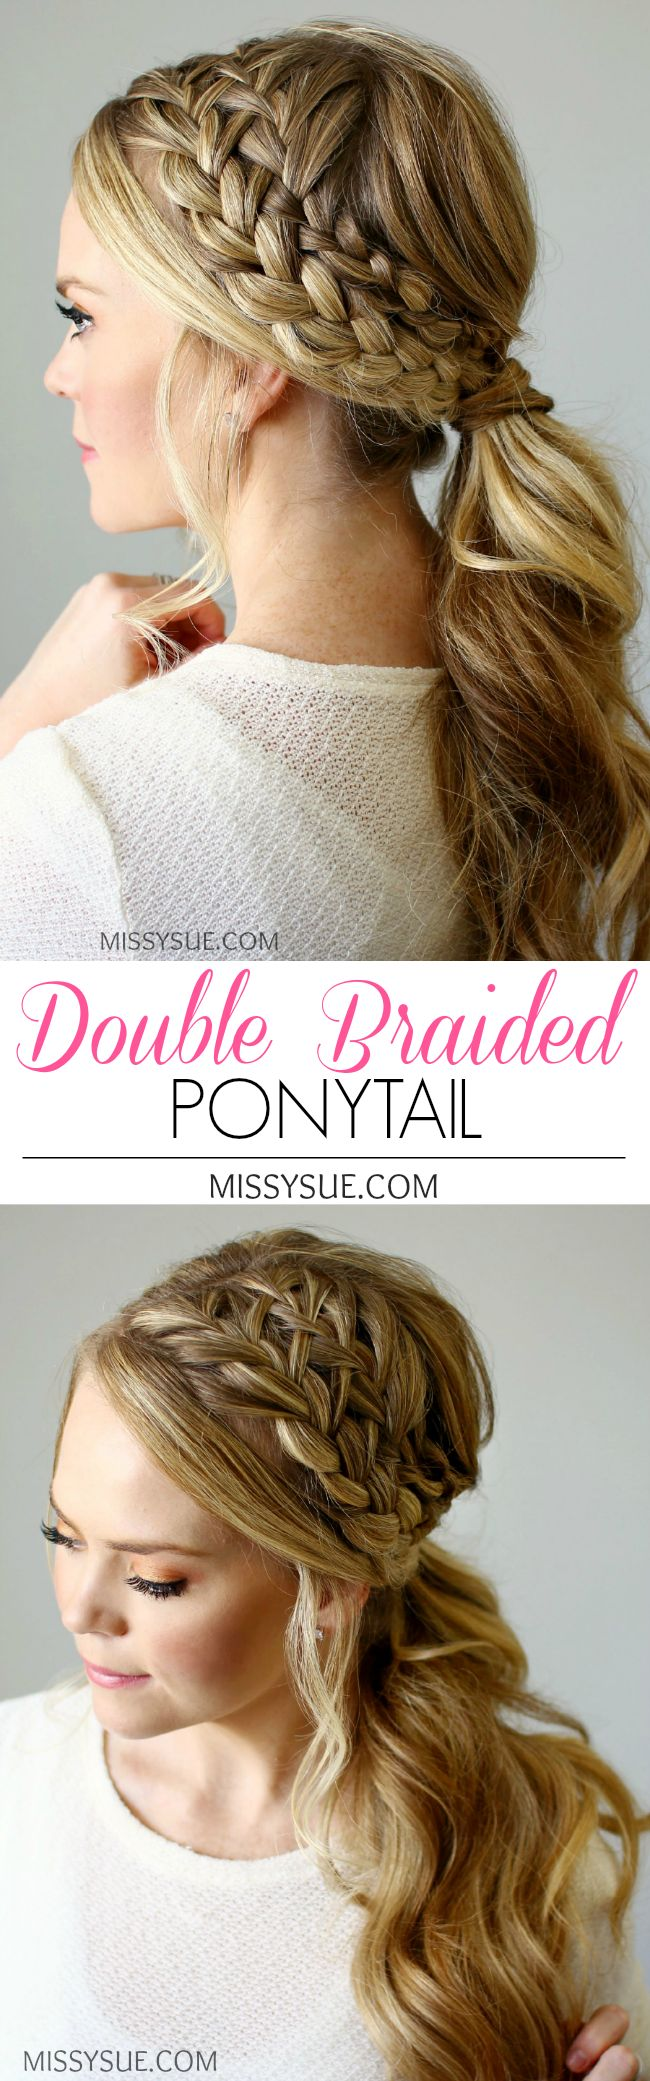 Fine 1000 Ideas About Easy Braided Hairstyles On Pinterest Types Of Short Hairstyles For Black Women Fulllsitofus